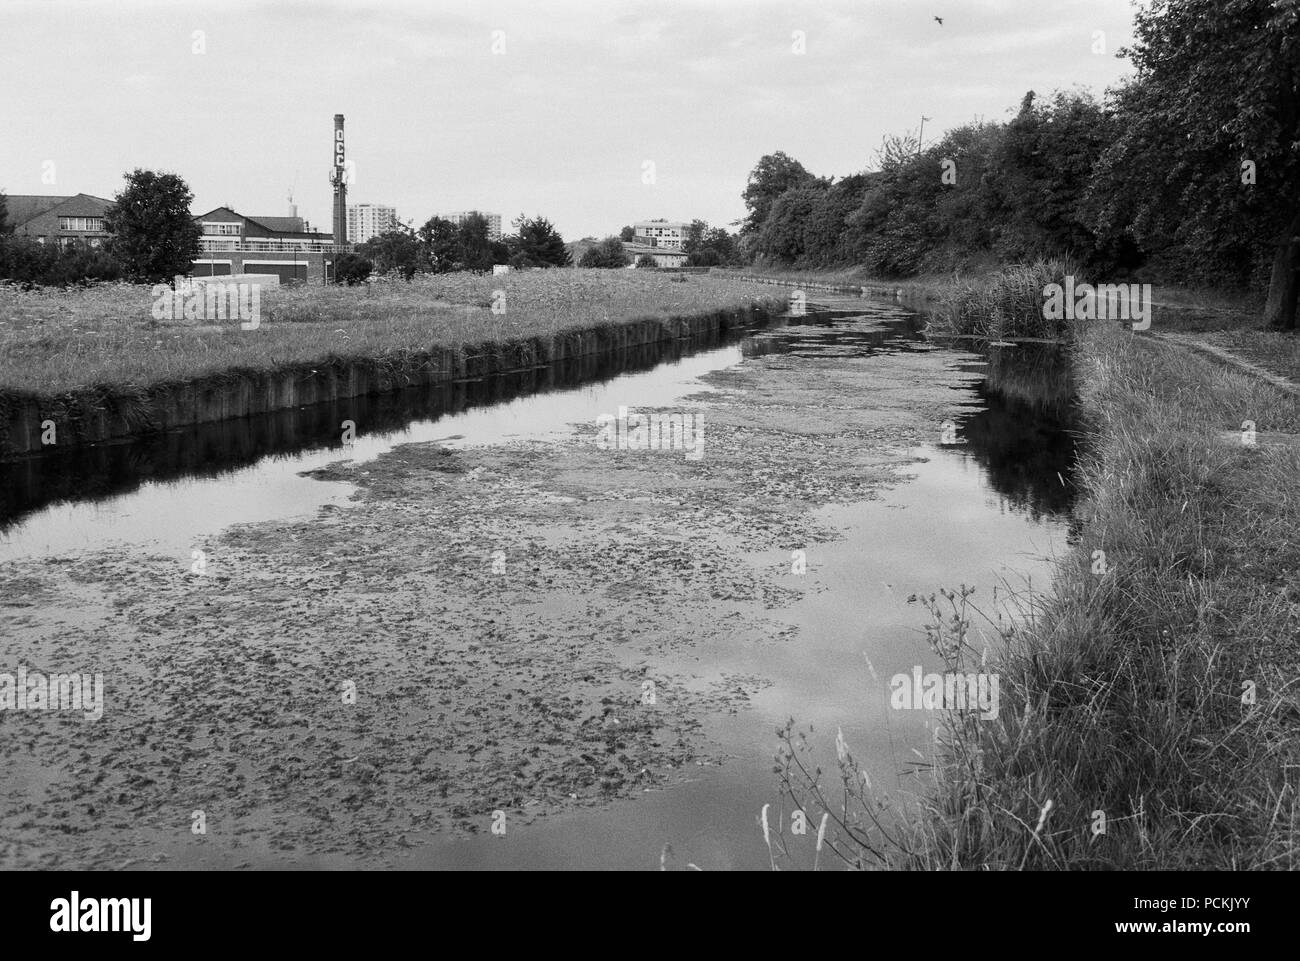 The New River at Harringay, North London, UK, filled with algae during the summer 2018 heatwave - Stock Image